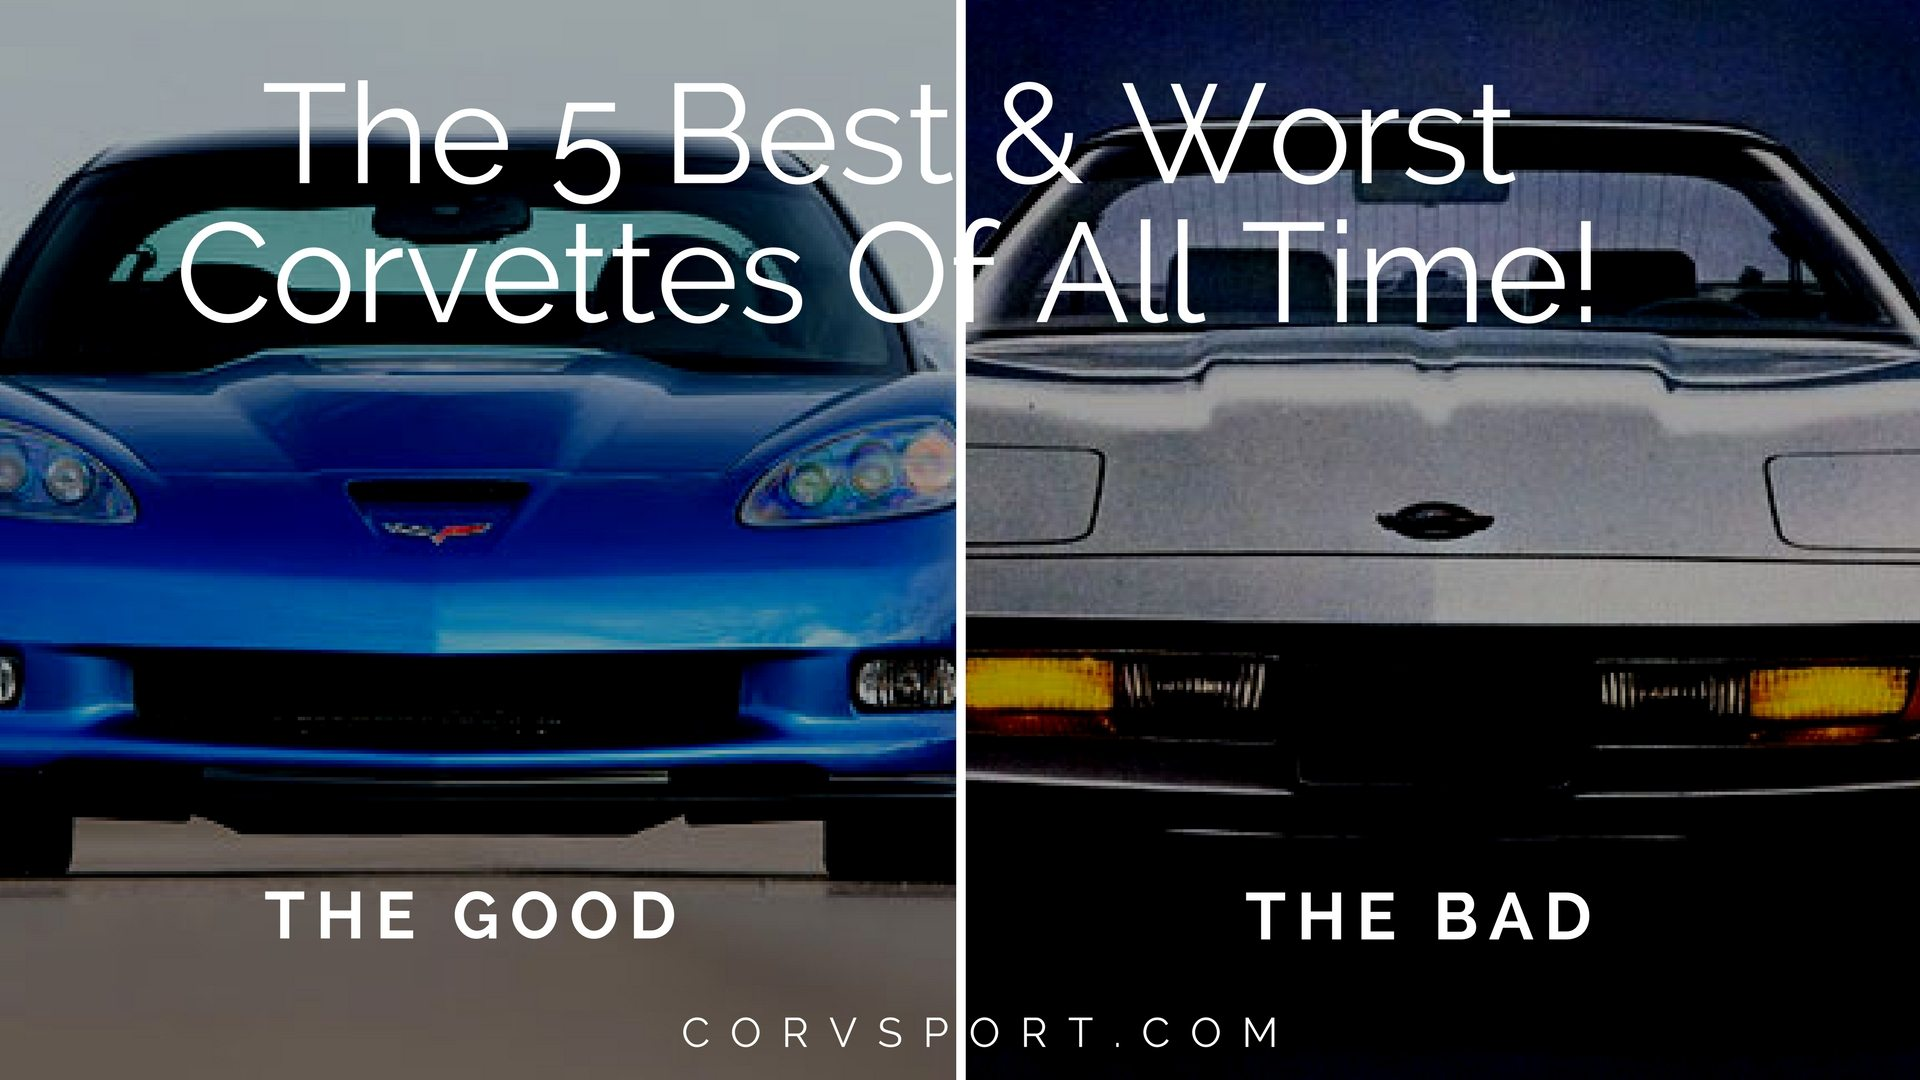 The 5 Best & Worst Corvettes of All Time! | CorvSport com